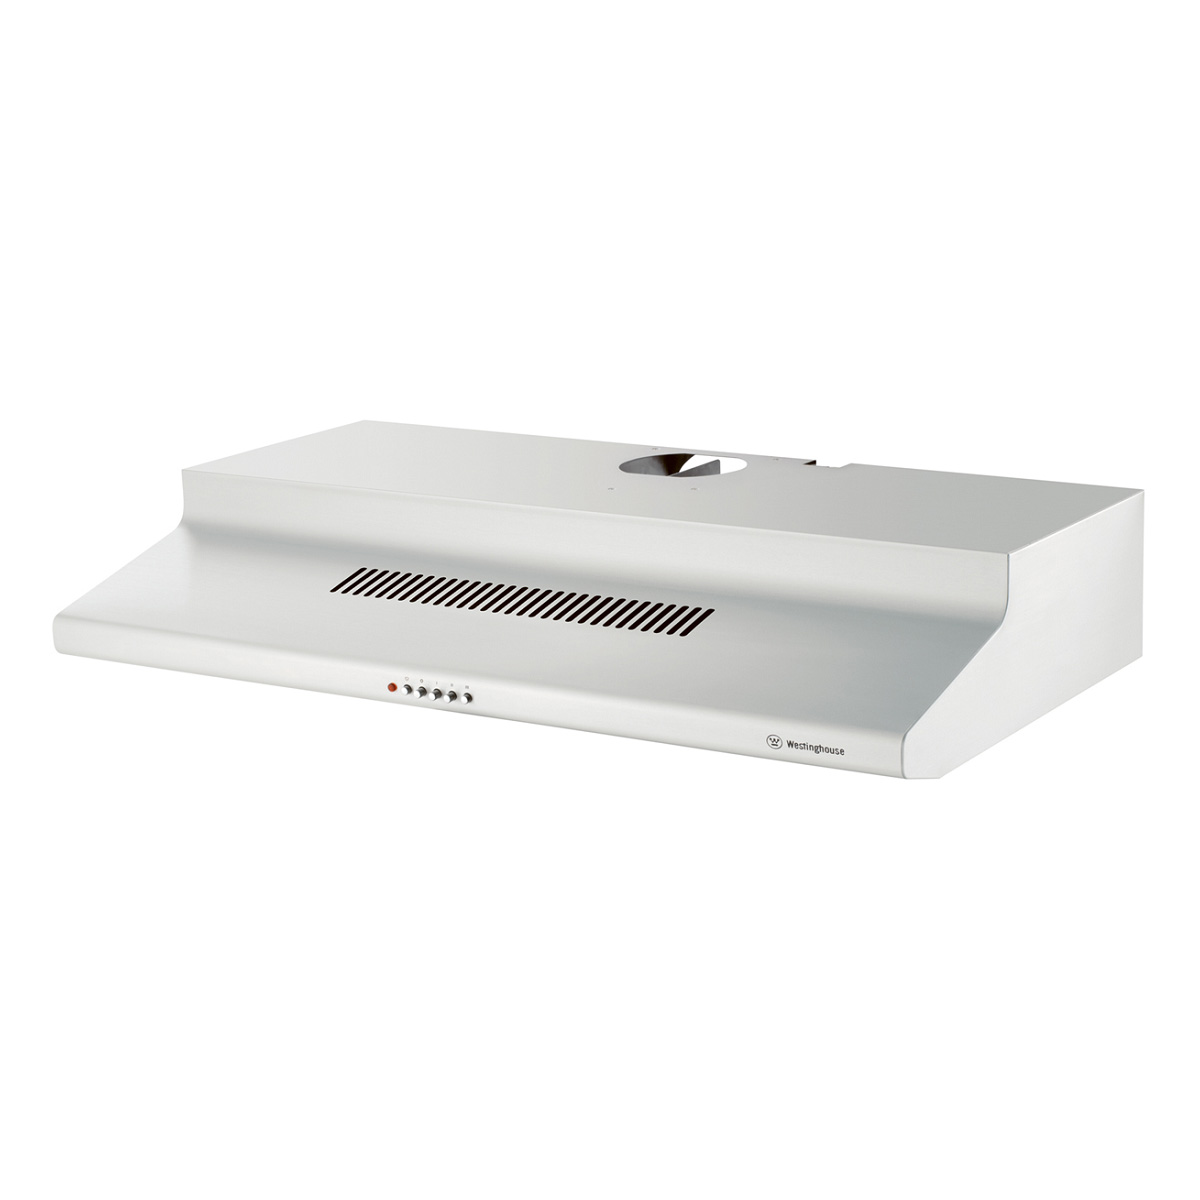 Westinghouse WRJ903UW Fixed Rangehood